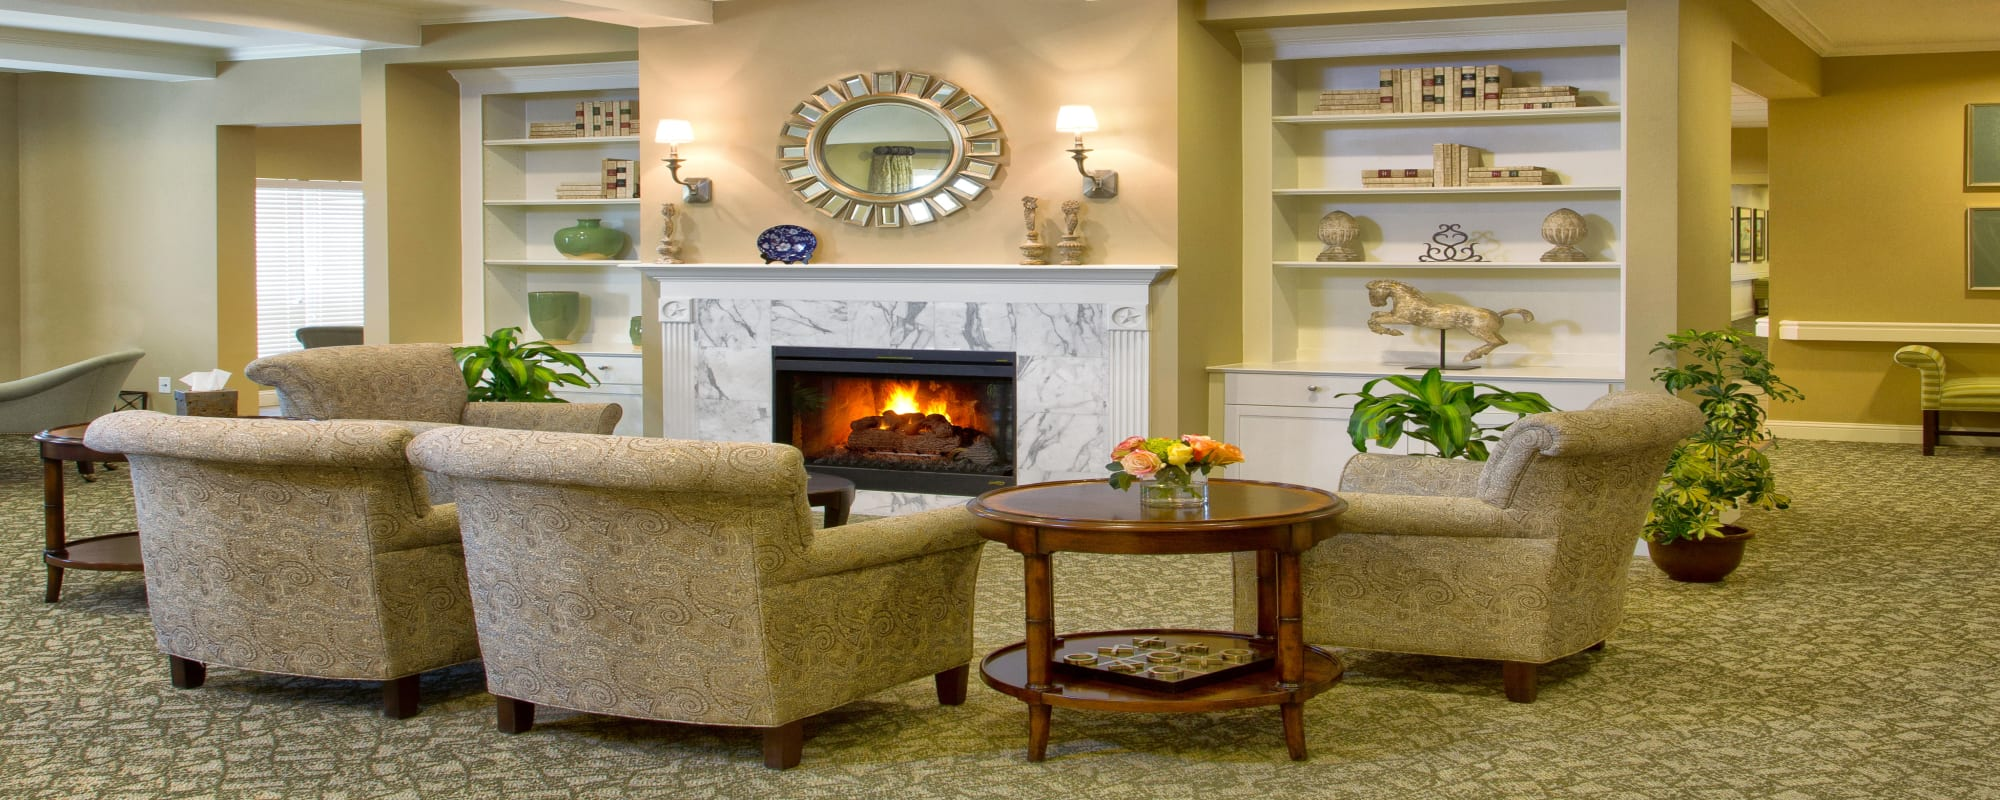 Autumn Grove Cottage at The Heights - Live Life Well TV